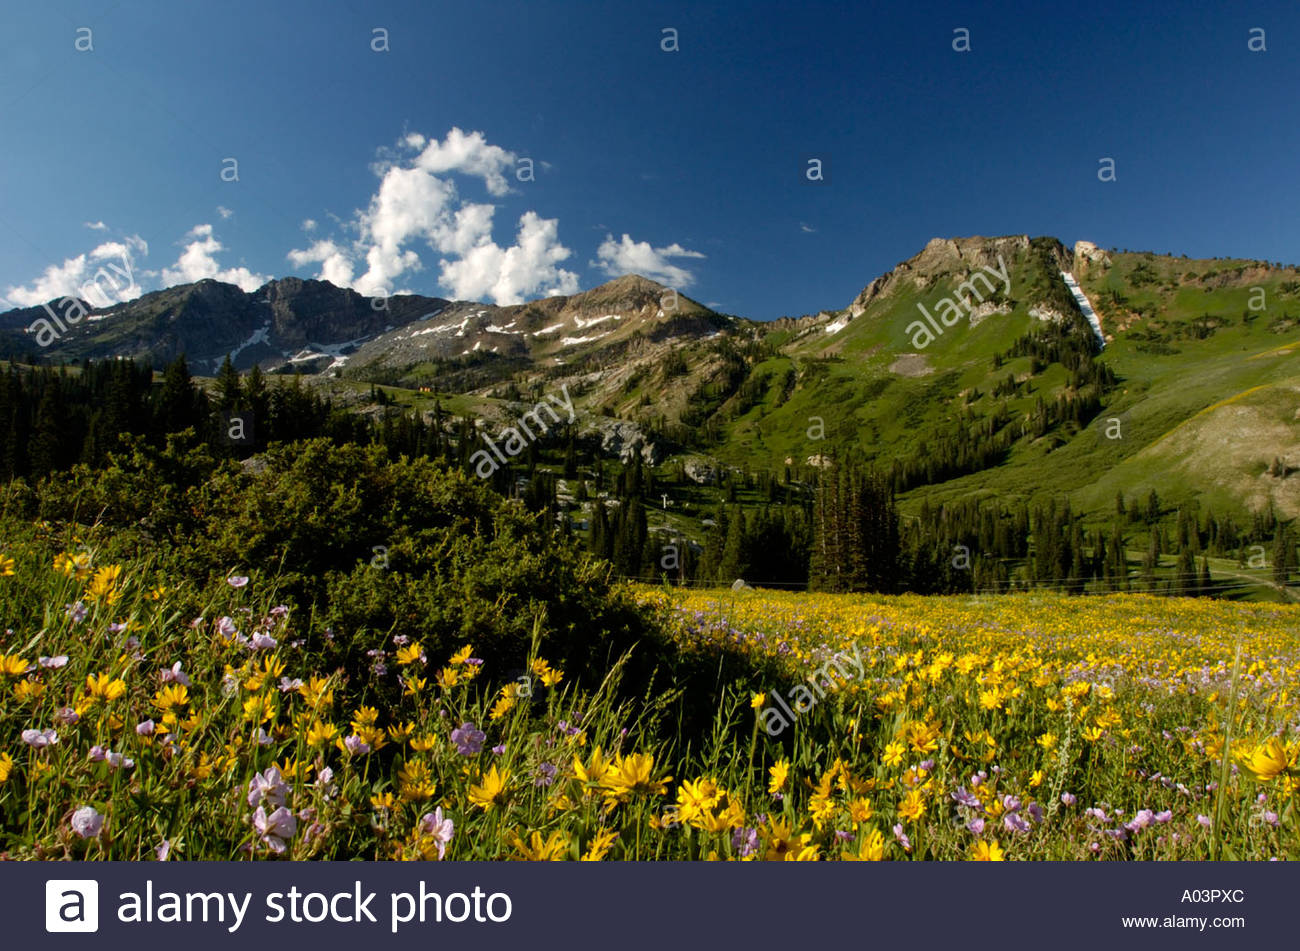 Wildcat Bluff Nature Center Amarillo, Springtime alpine meadow with yellow wildflowers, Albion Basin ...